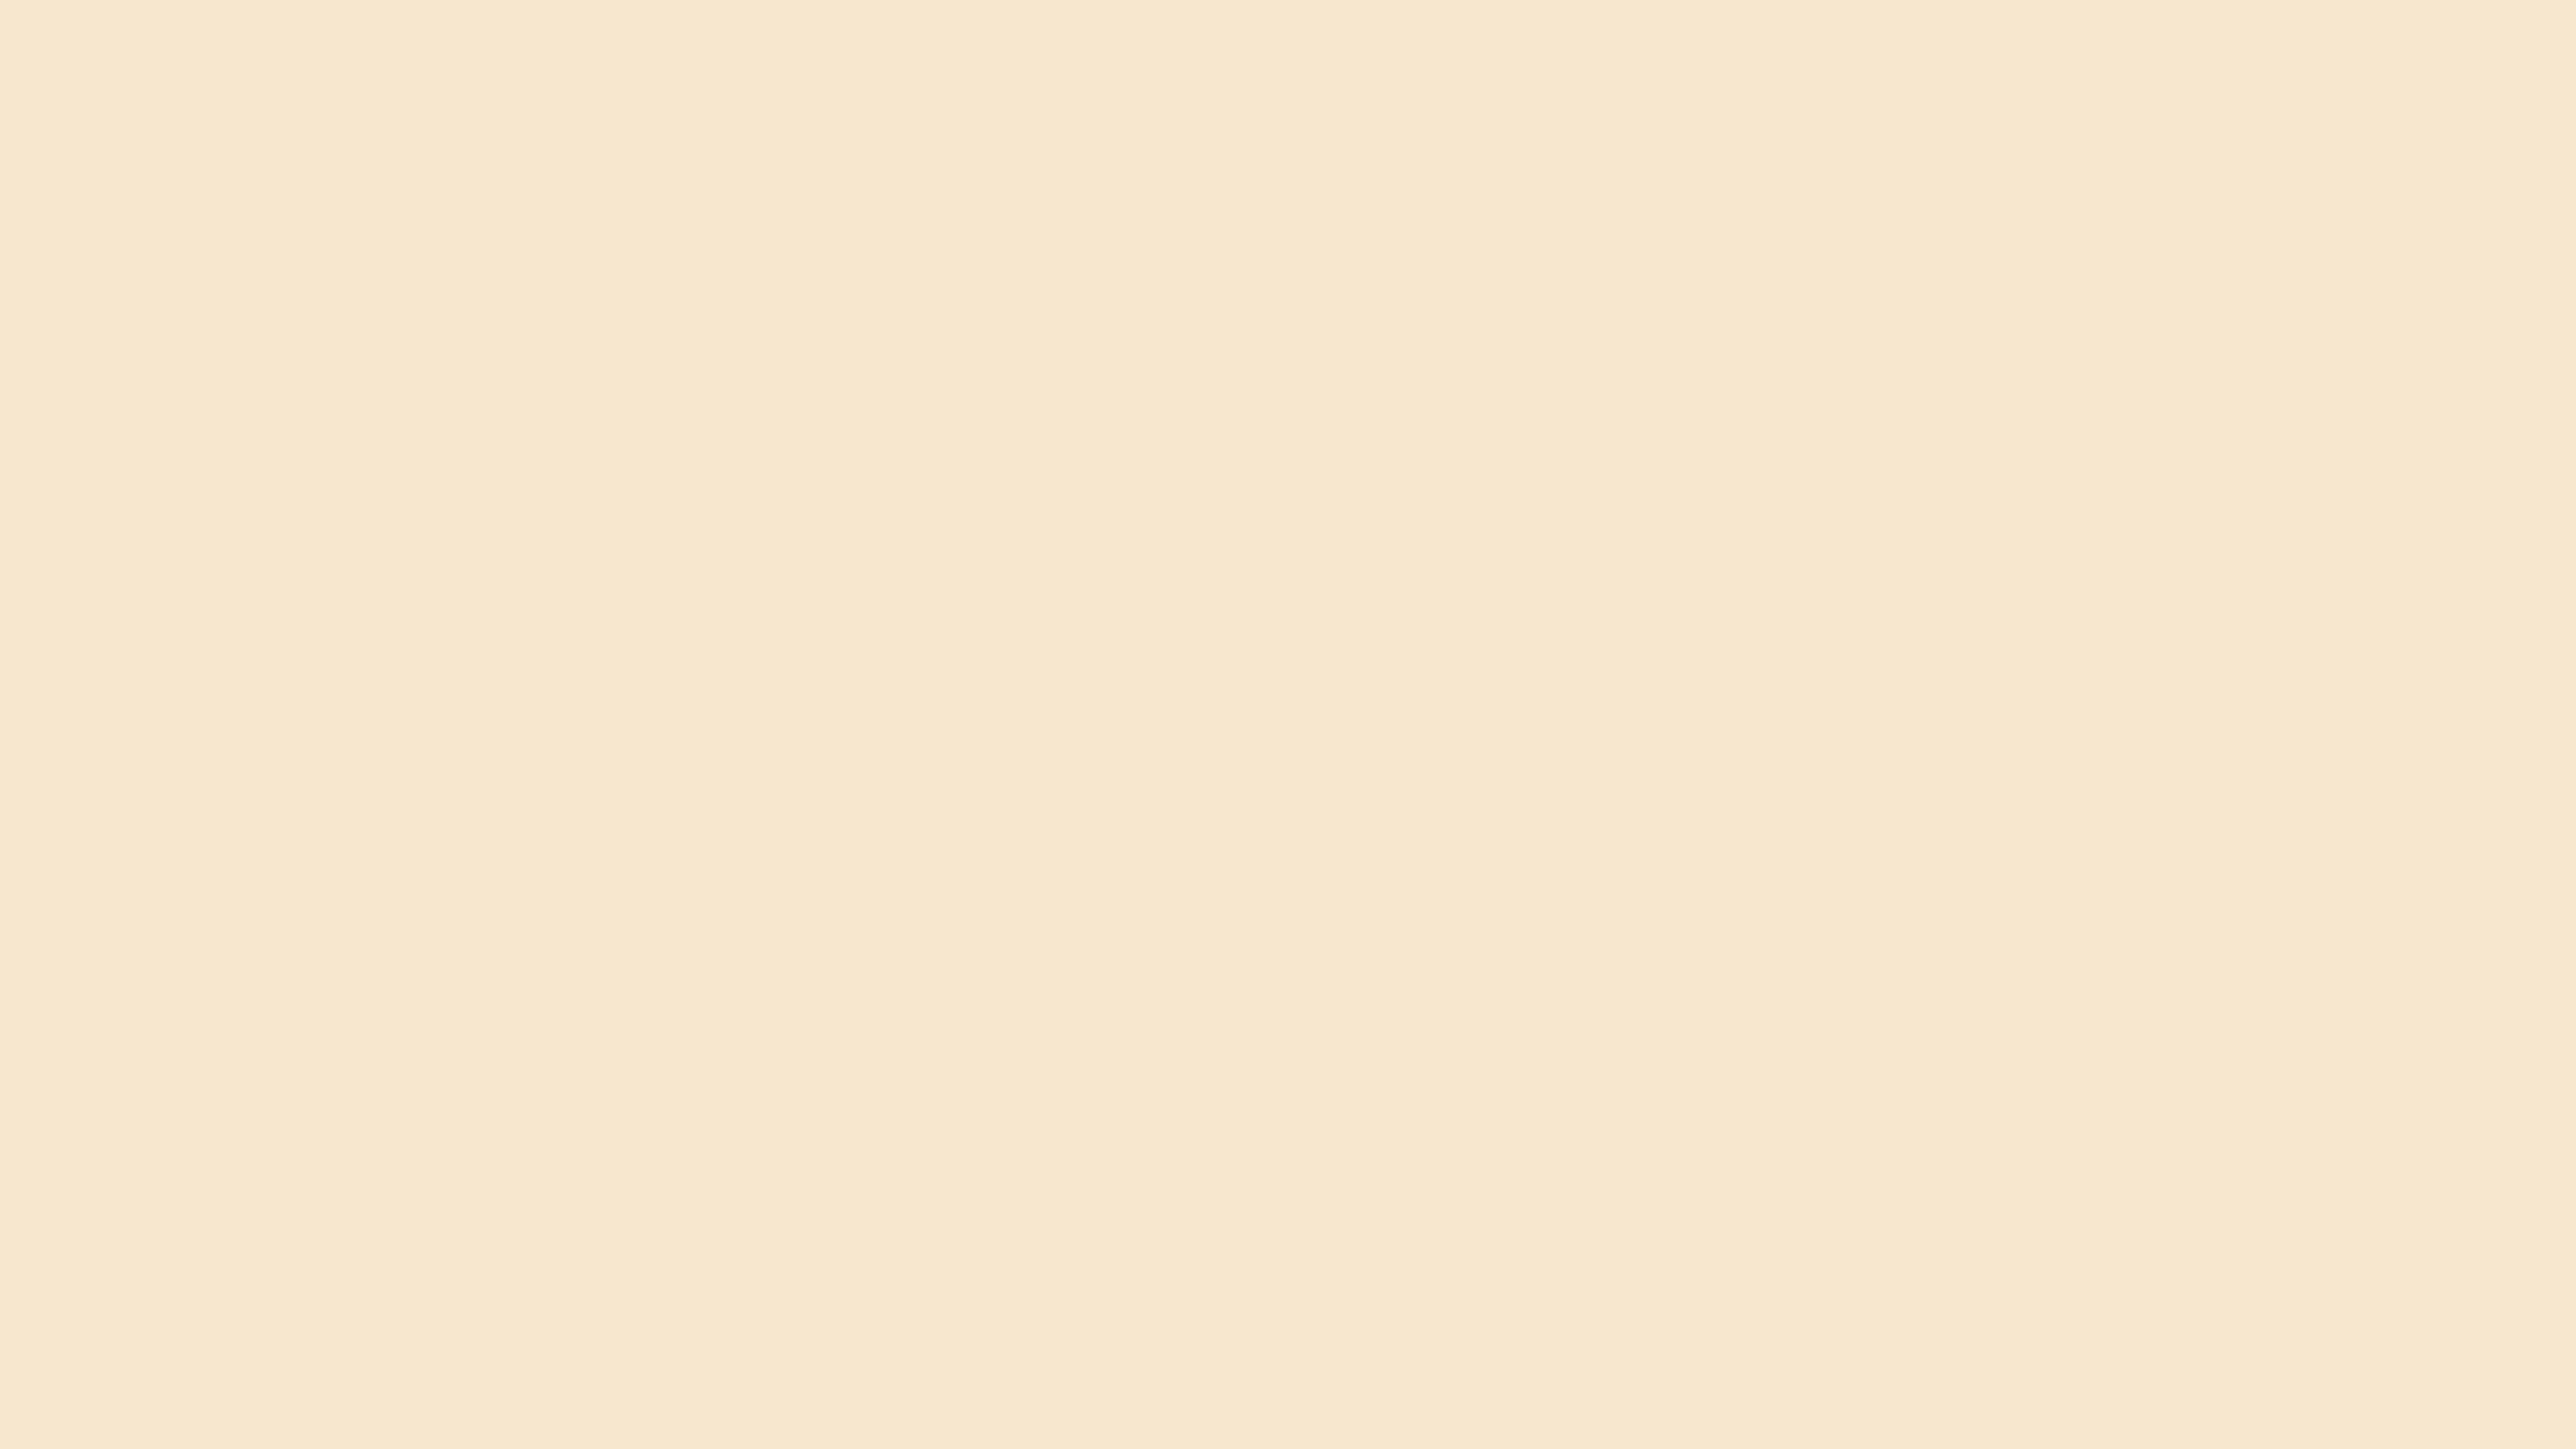 4096x2304 Champagne Solid Color Background